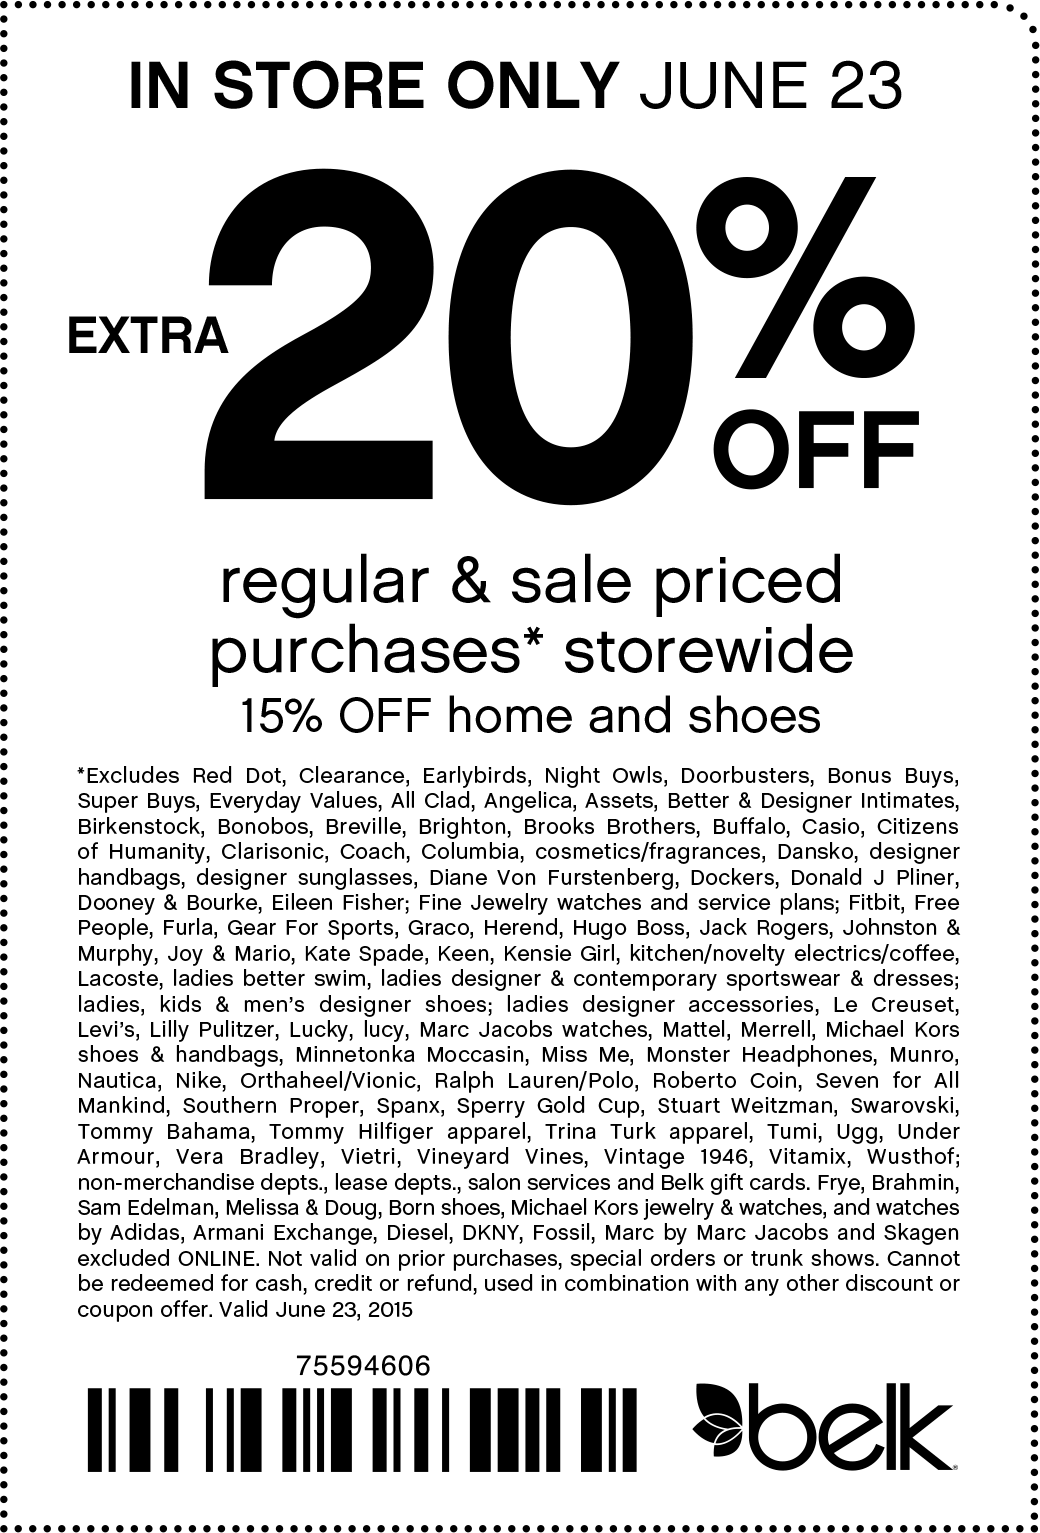 Belk Coupon January 2017 Extra 20% off today at Belk, or online via promo code 96995193